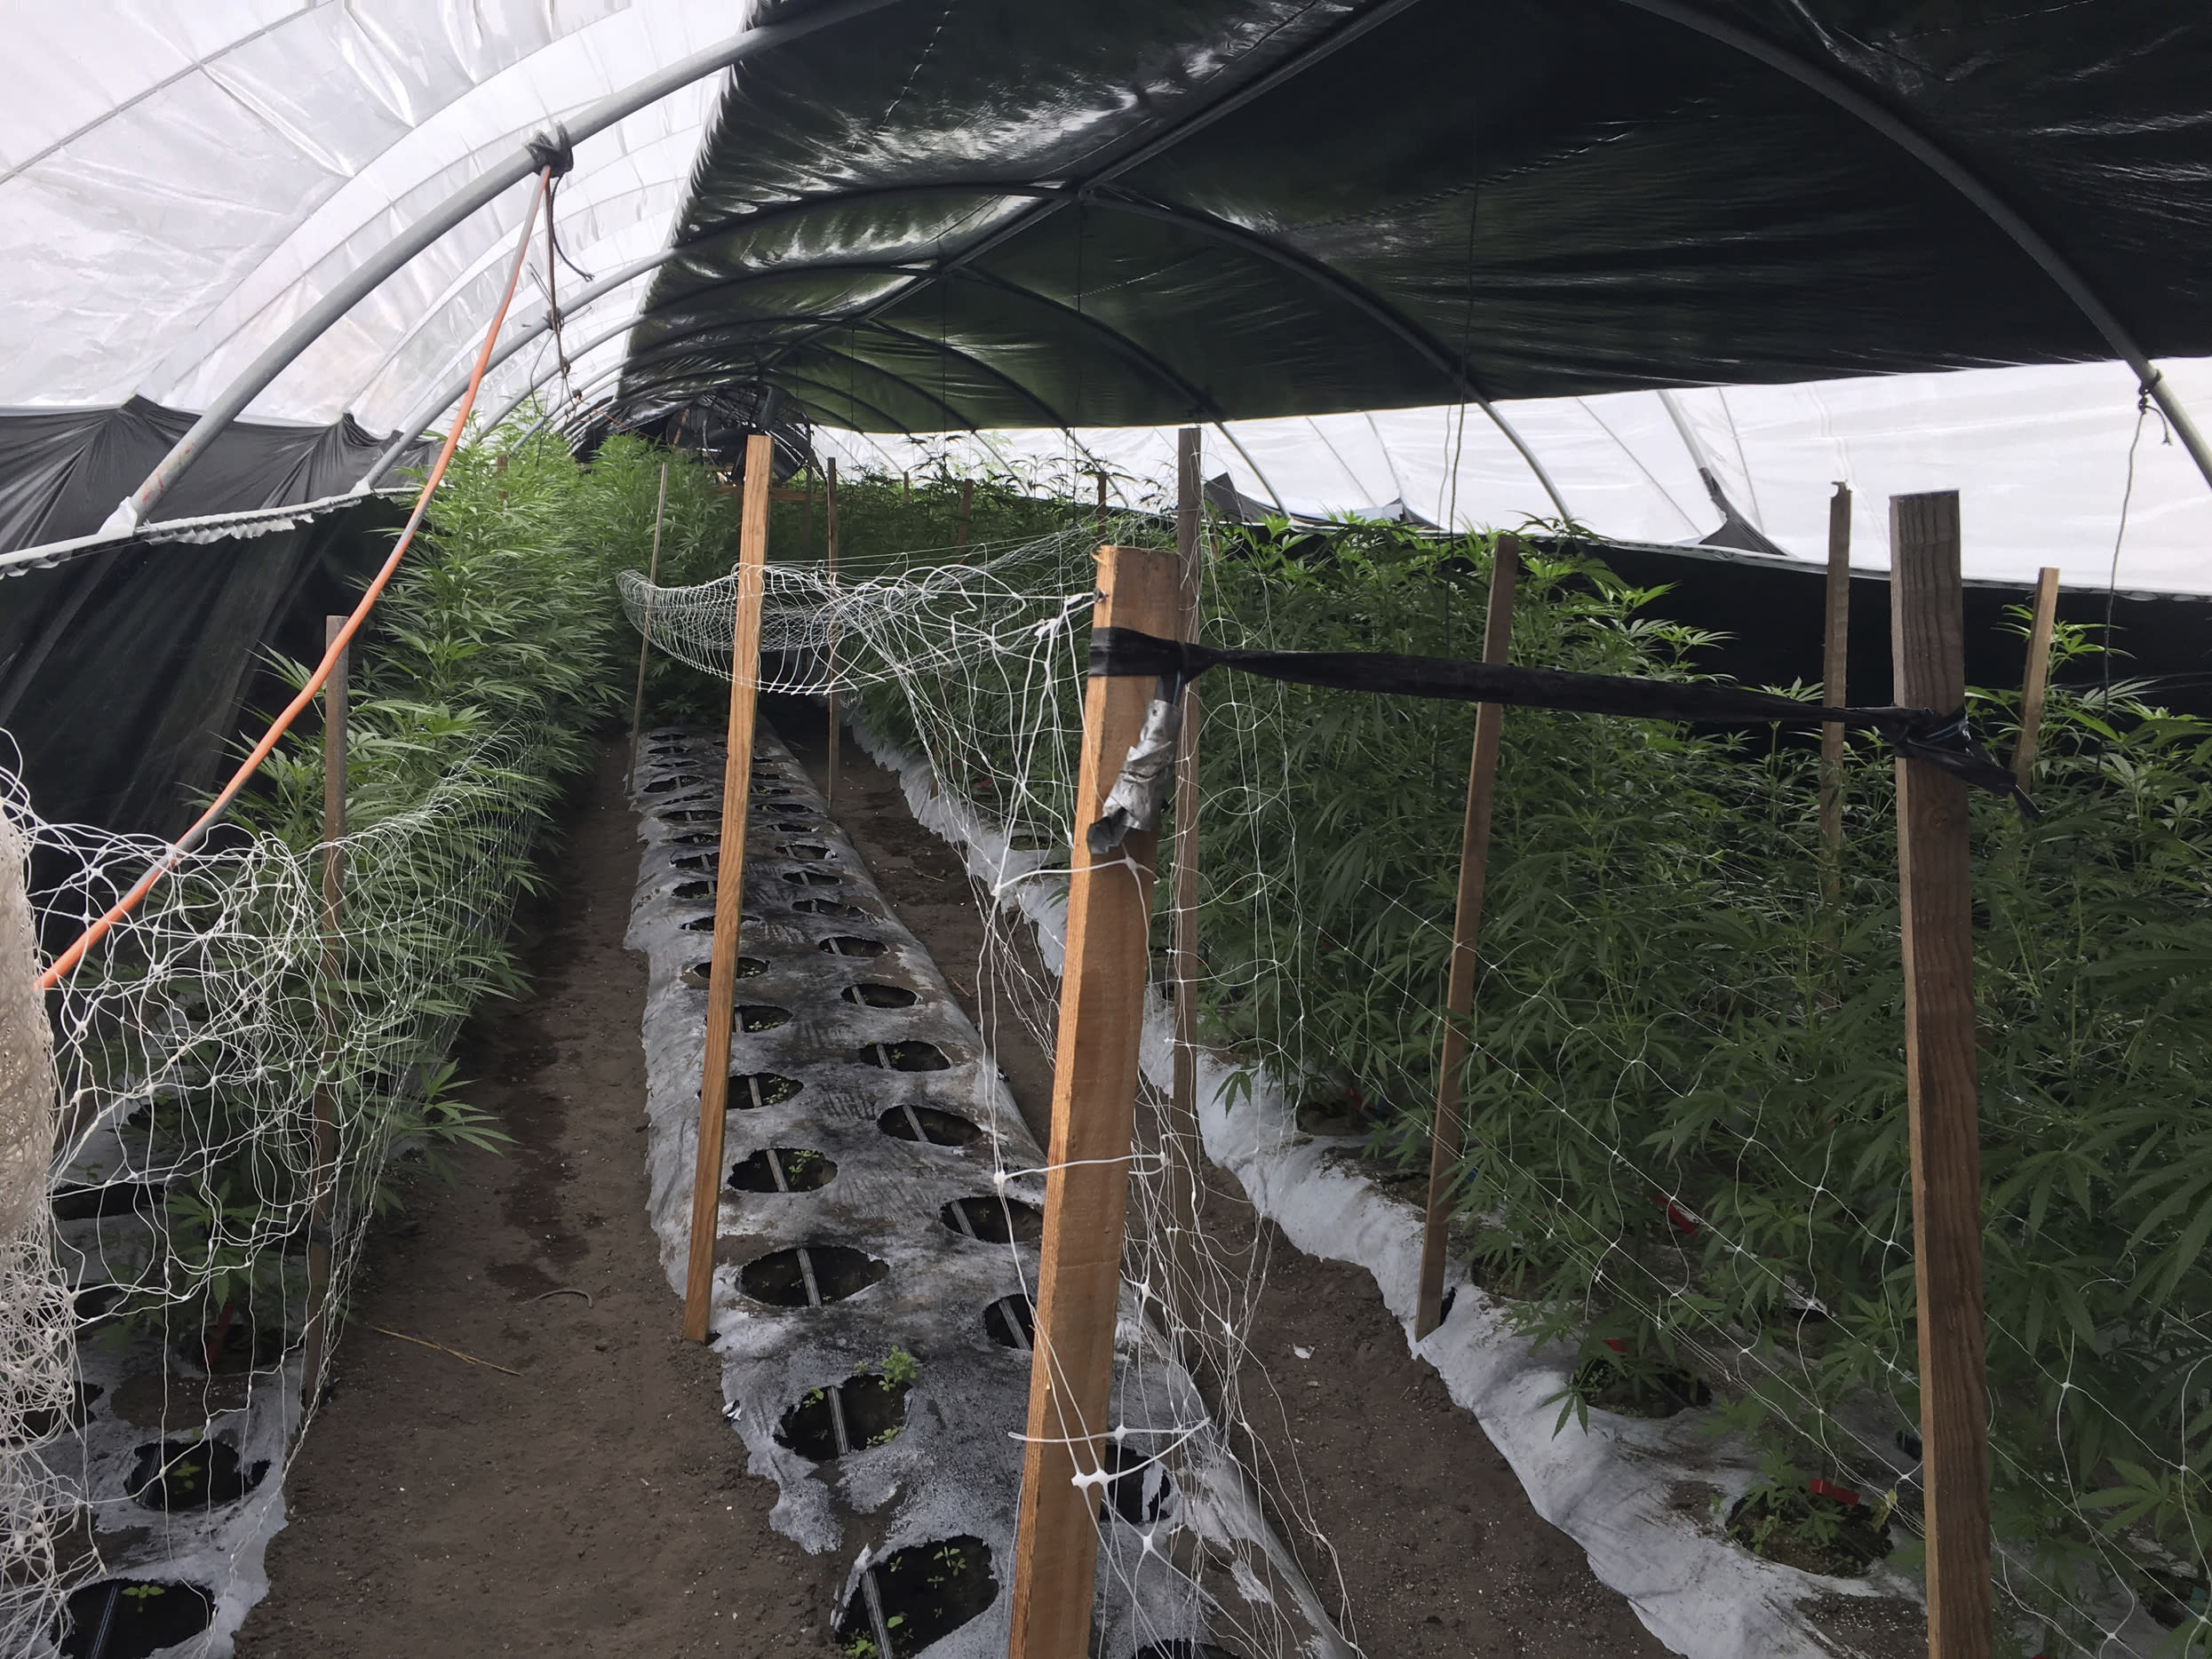 FILE - This Wednesday, June 19, 2019, file photo released by the Santa Barbara County Sheriff shows an illegal cannabis cultivation site in the City of Santa Maria, in San Luis Obispo County, Calif. The number of felony marijuana arrests in California continued to plunge in 2019 in the age of legalization, but another trend remained unchanged: those arrests fell disproportionately on Hispanics and Blacks, state data showed. (Santa Barbara County Sheriff via AP, File)